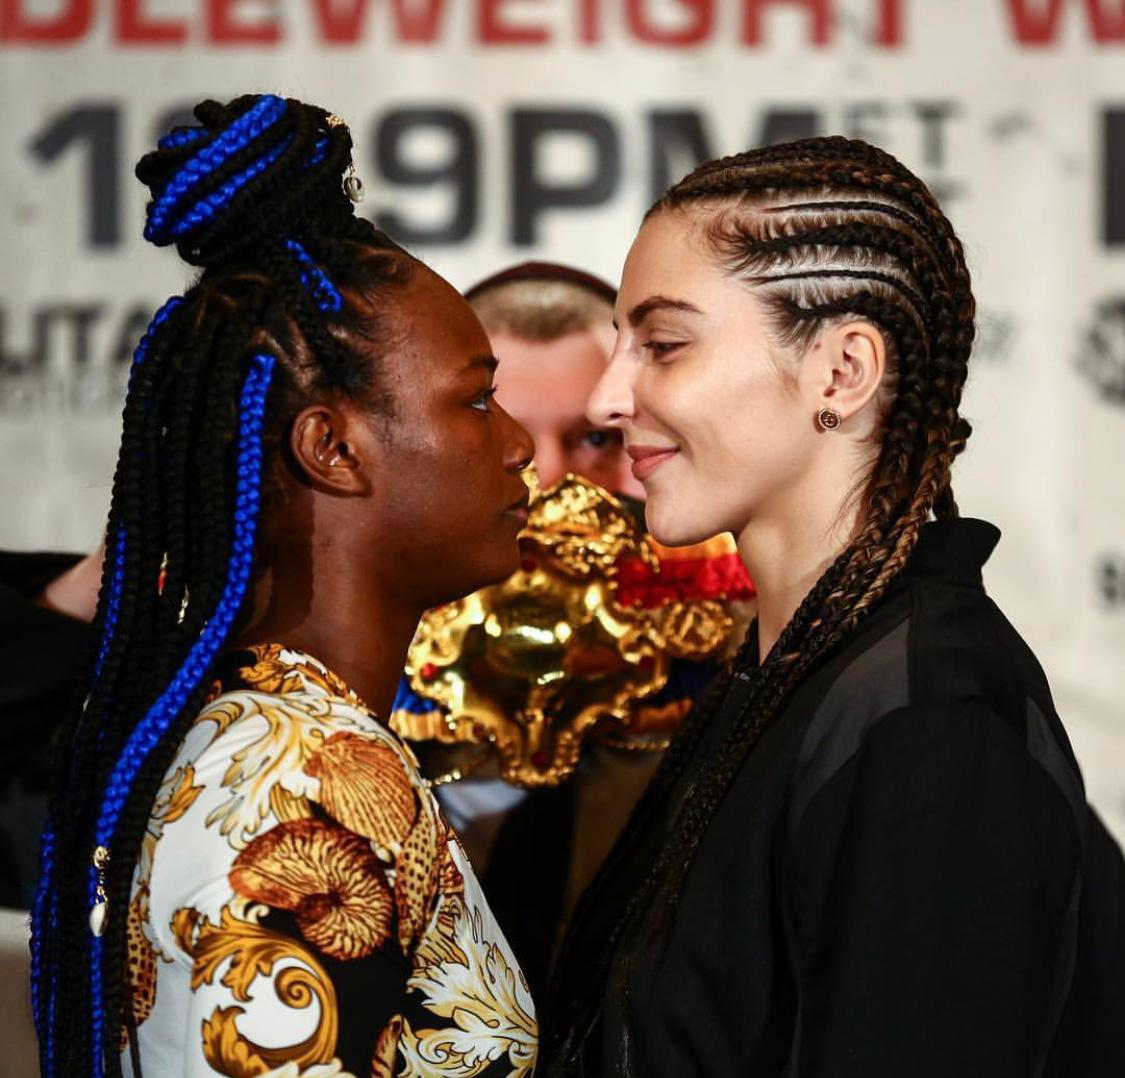 Shields and Hammer go face to face in Atlantic City